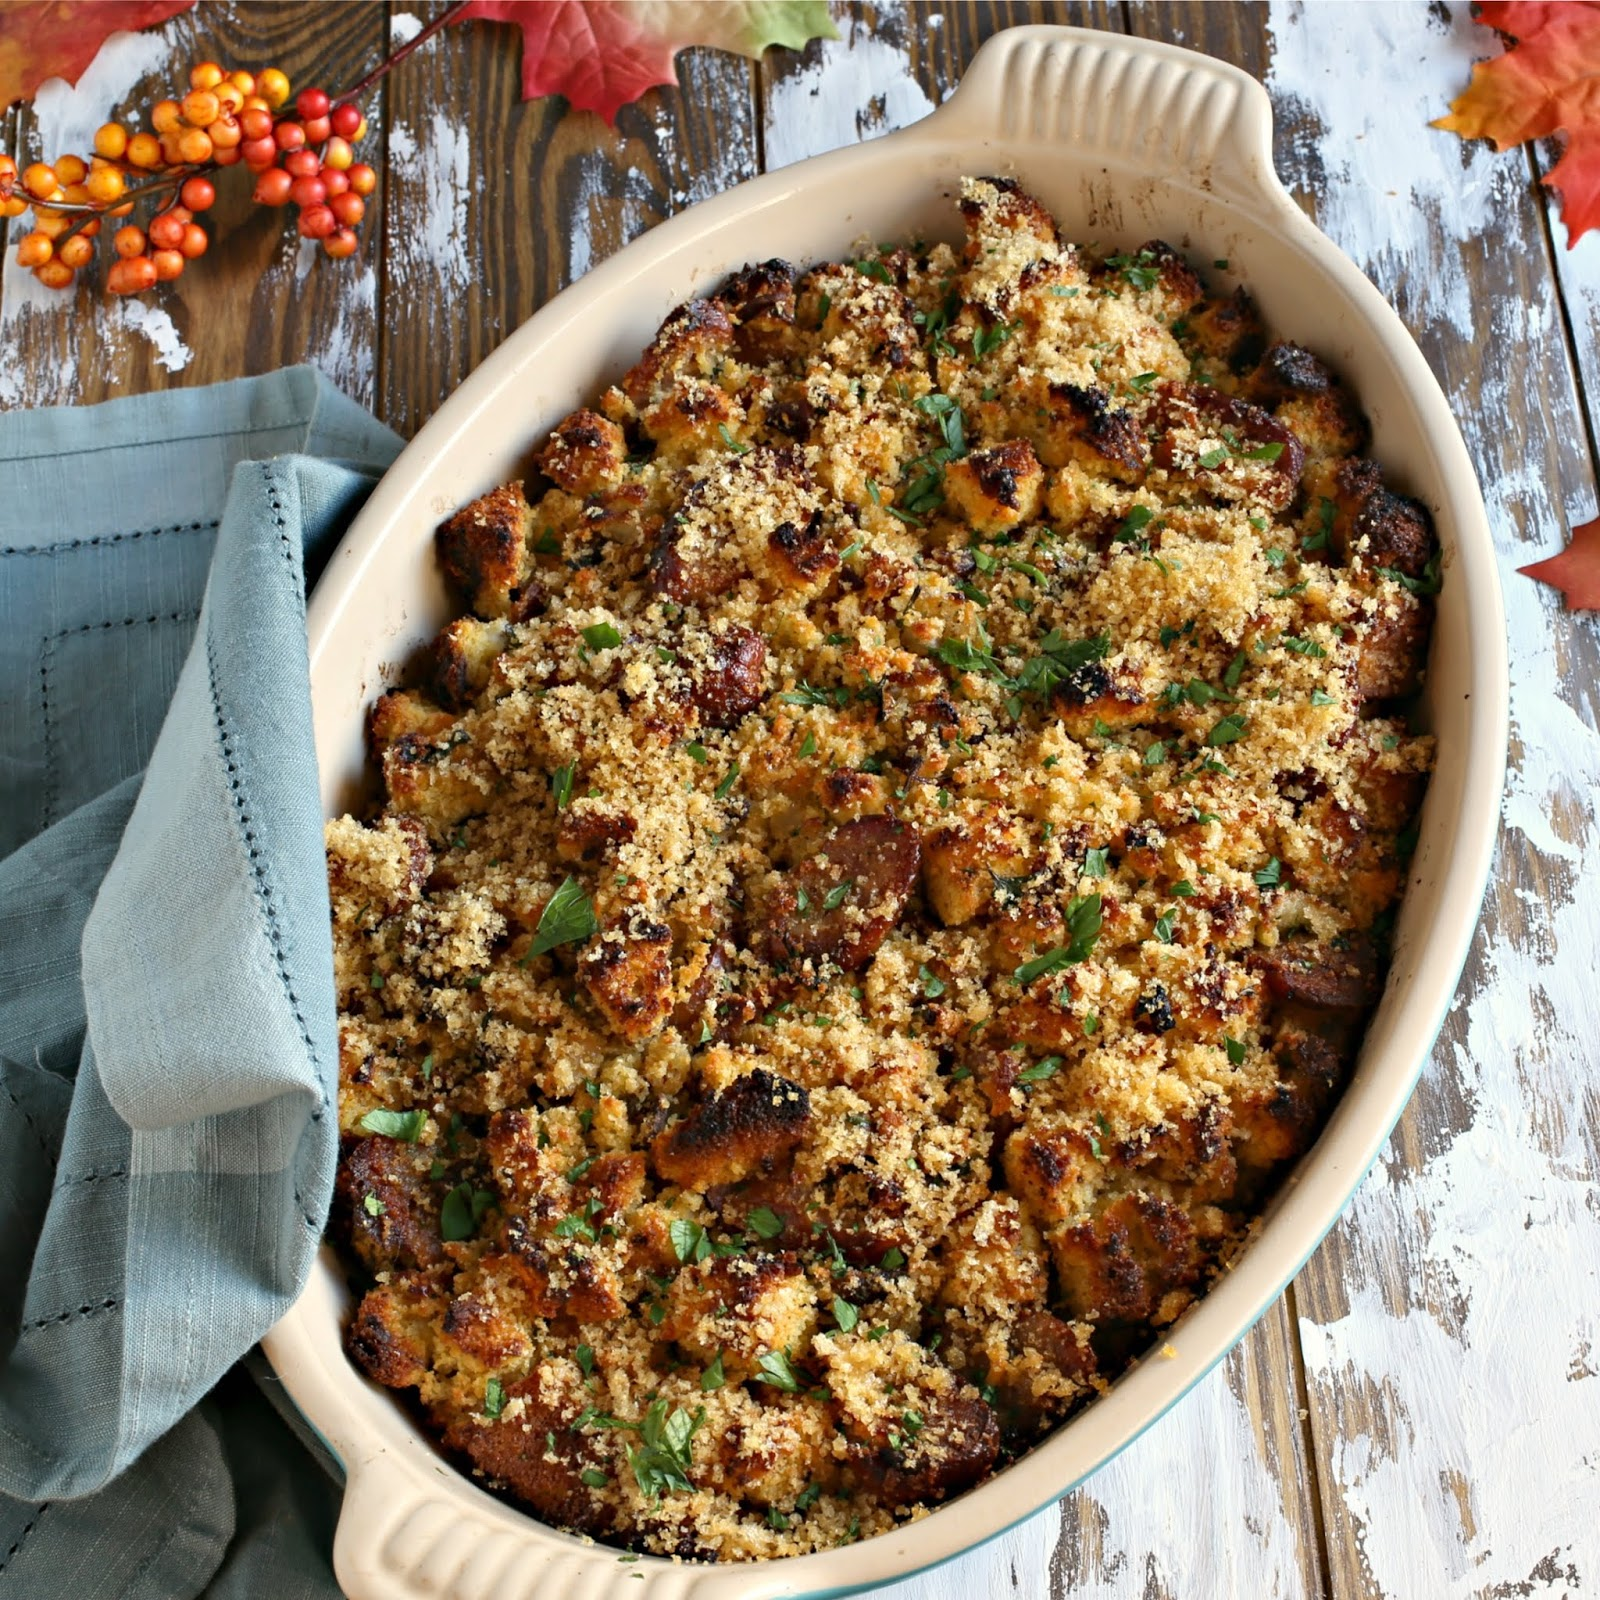 Homemade cornbread stuffing with bacon, sausage and cheese.